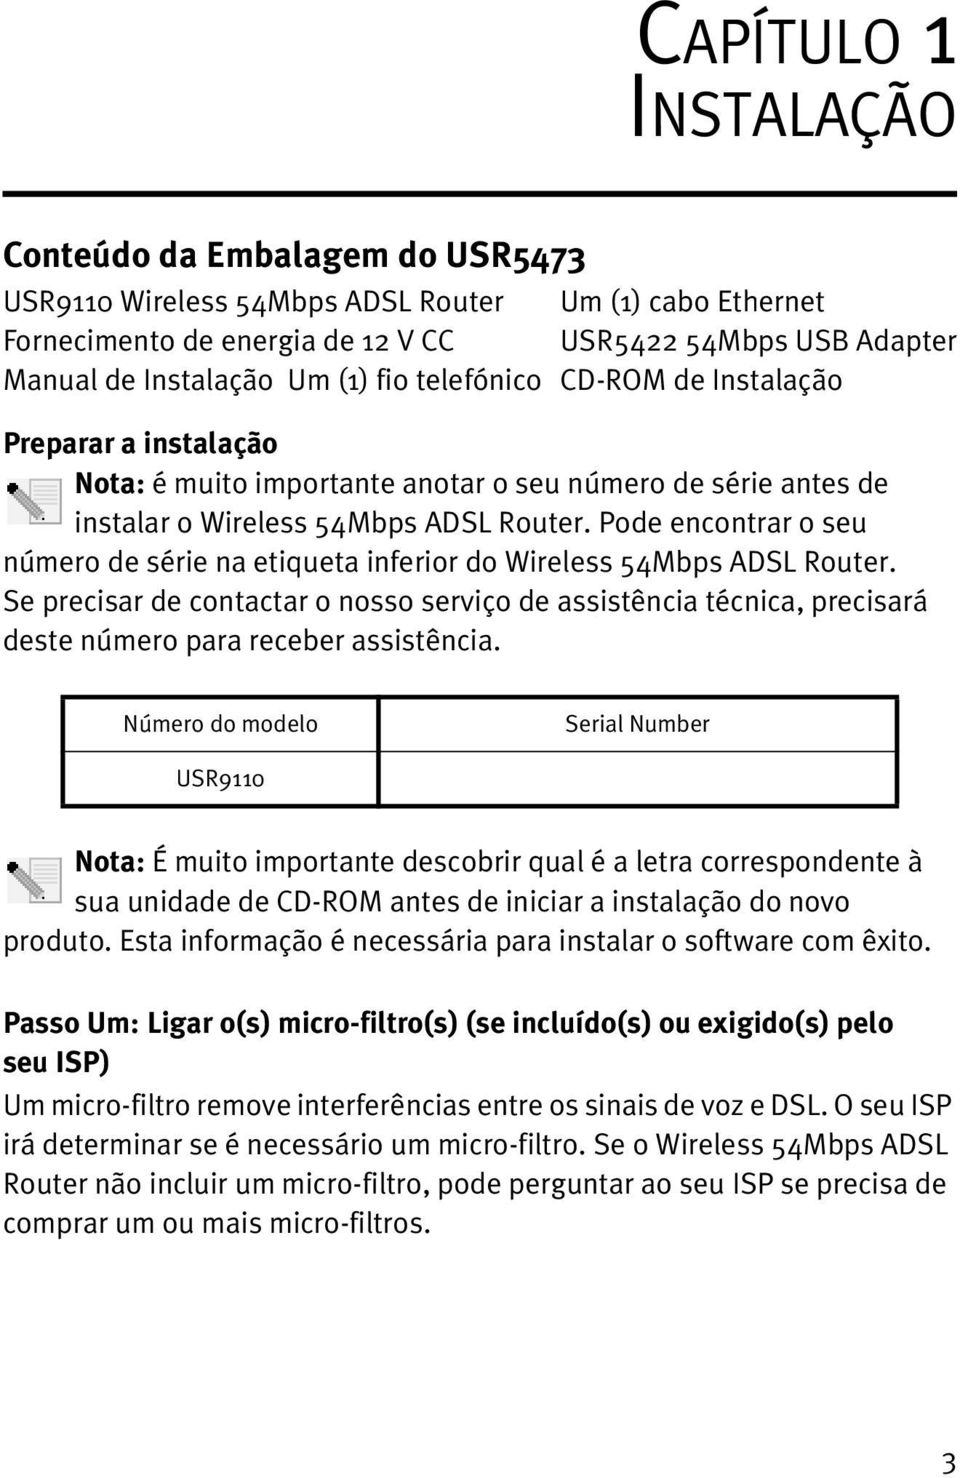 Pode encontrar o seu número de série na etiqueta inferior do Wireless 54Mbps ADSL Router.